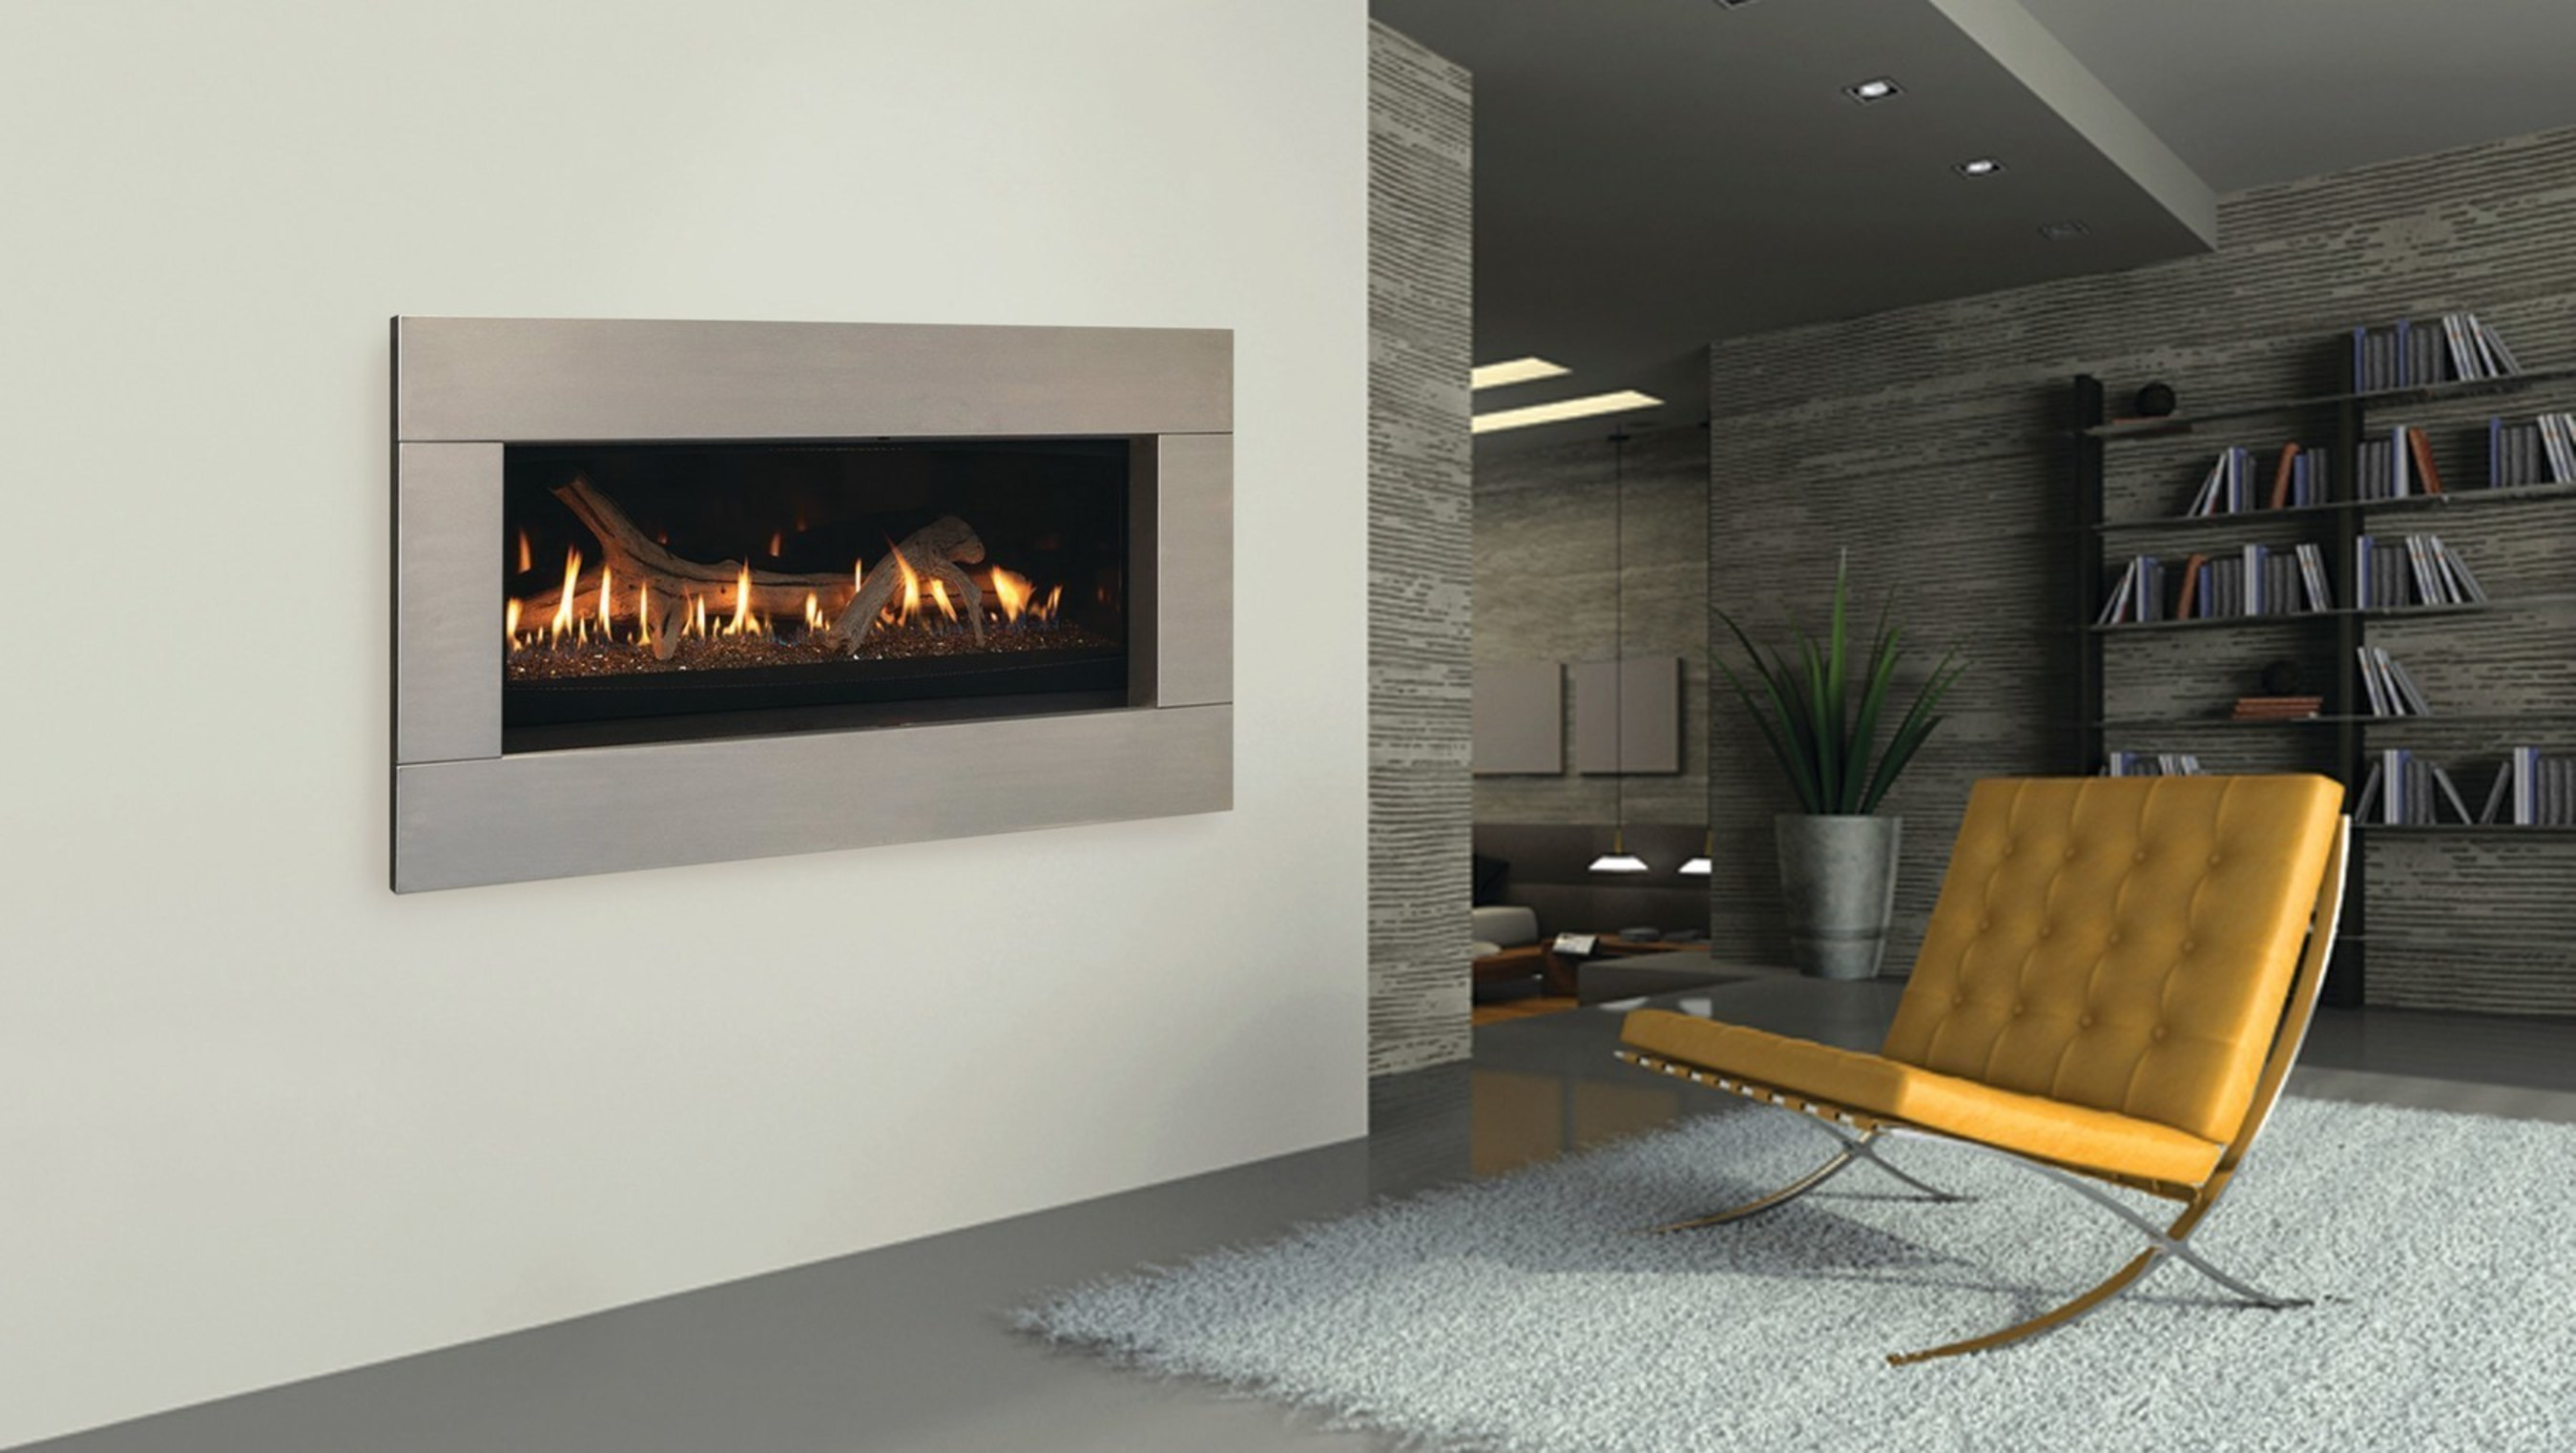 Featuring ultra-contemporary styling, the Majestic Echelon lets homeowners view the beautiful ribbon flame from almost any angle. Available in single-sided or see-through models, versatile installation options make it the only see-through linear fireplace that can be installed on an exterior wall.